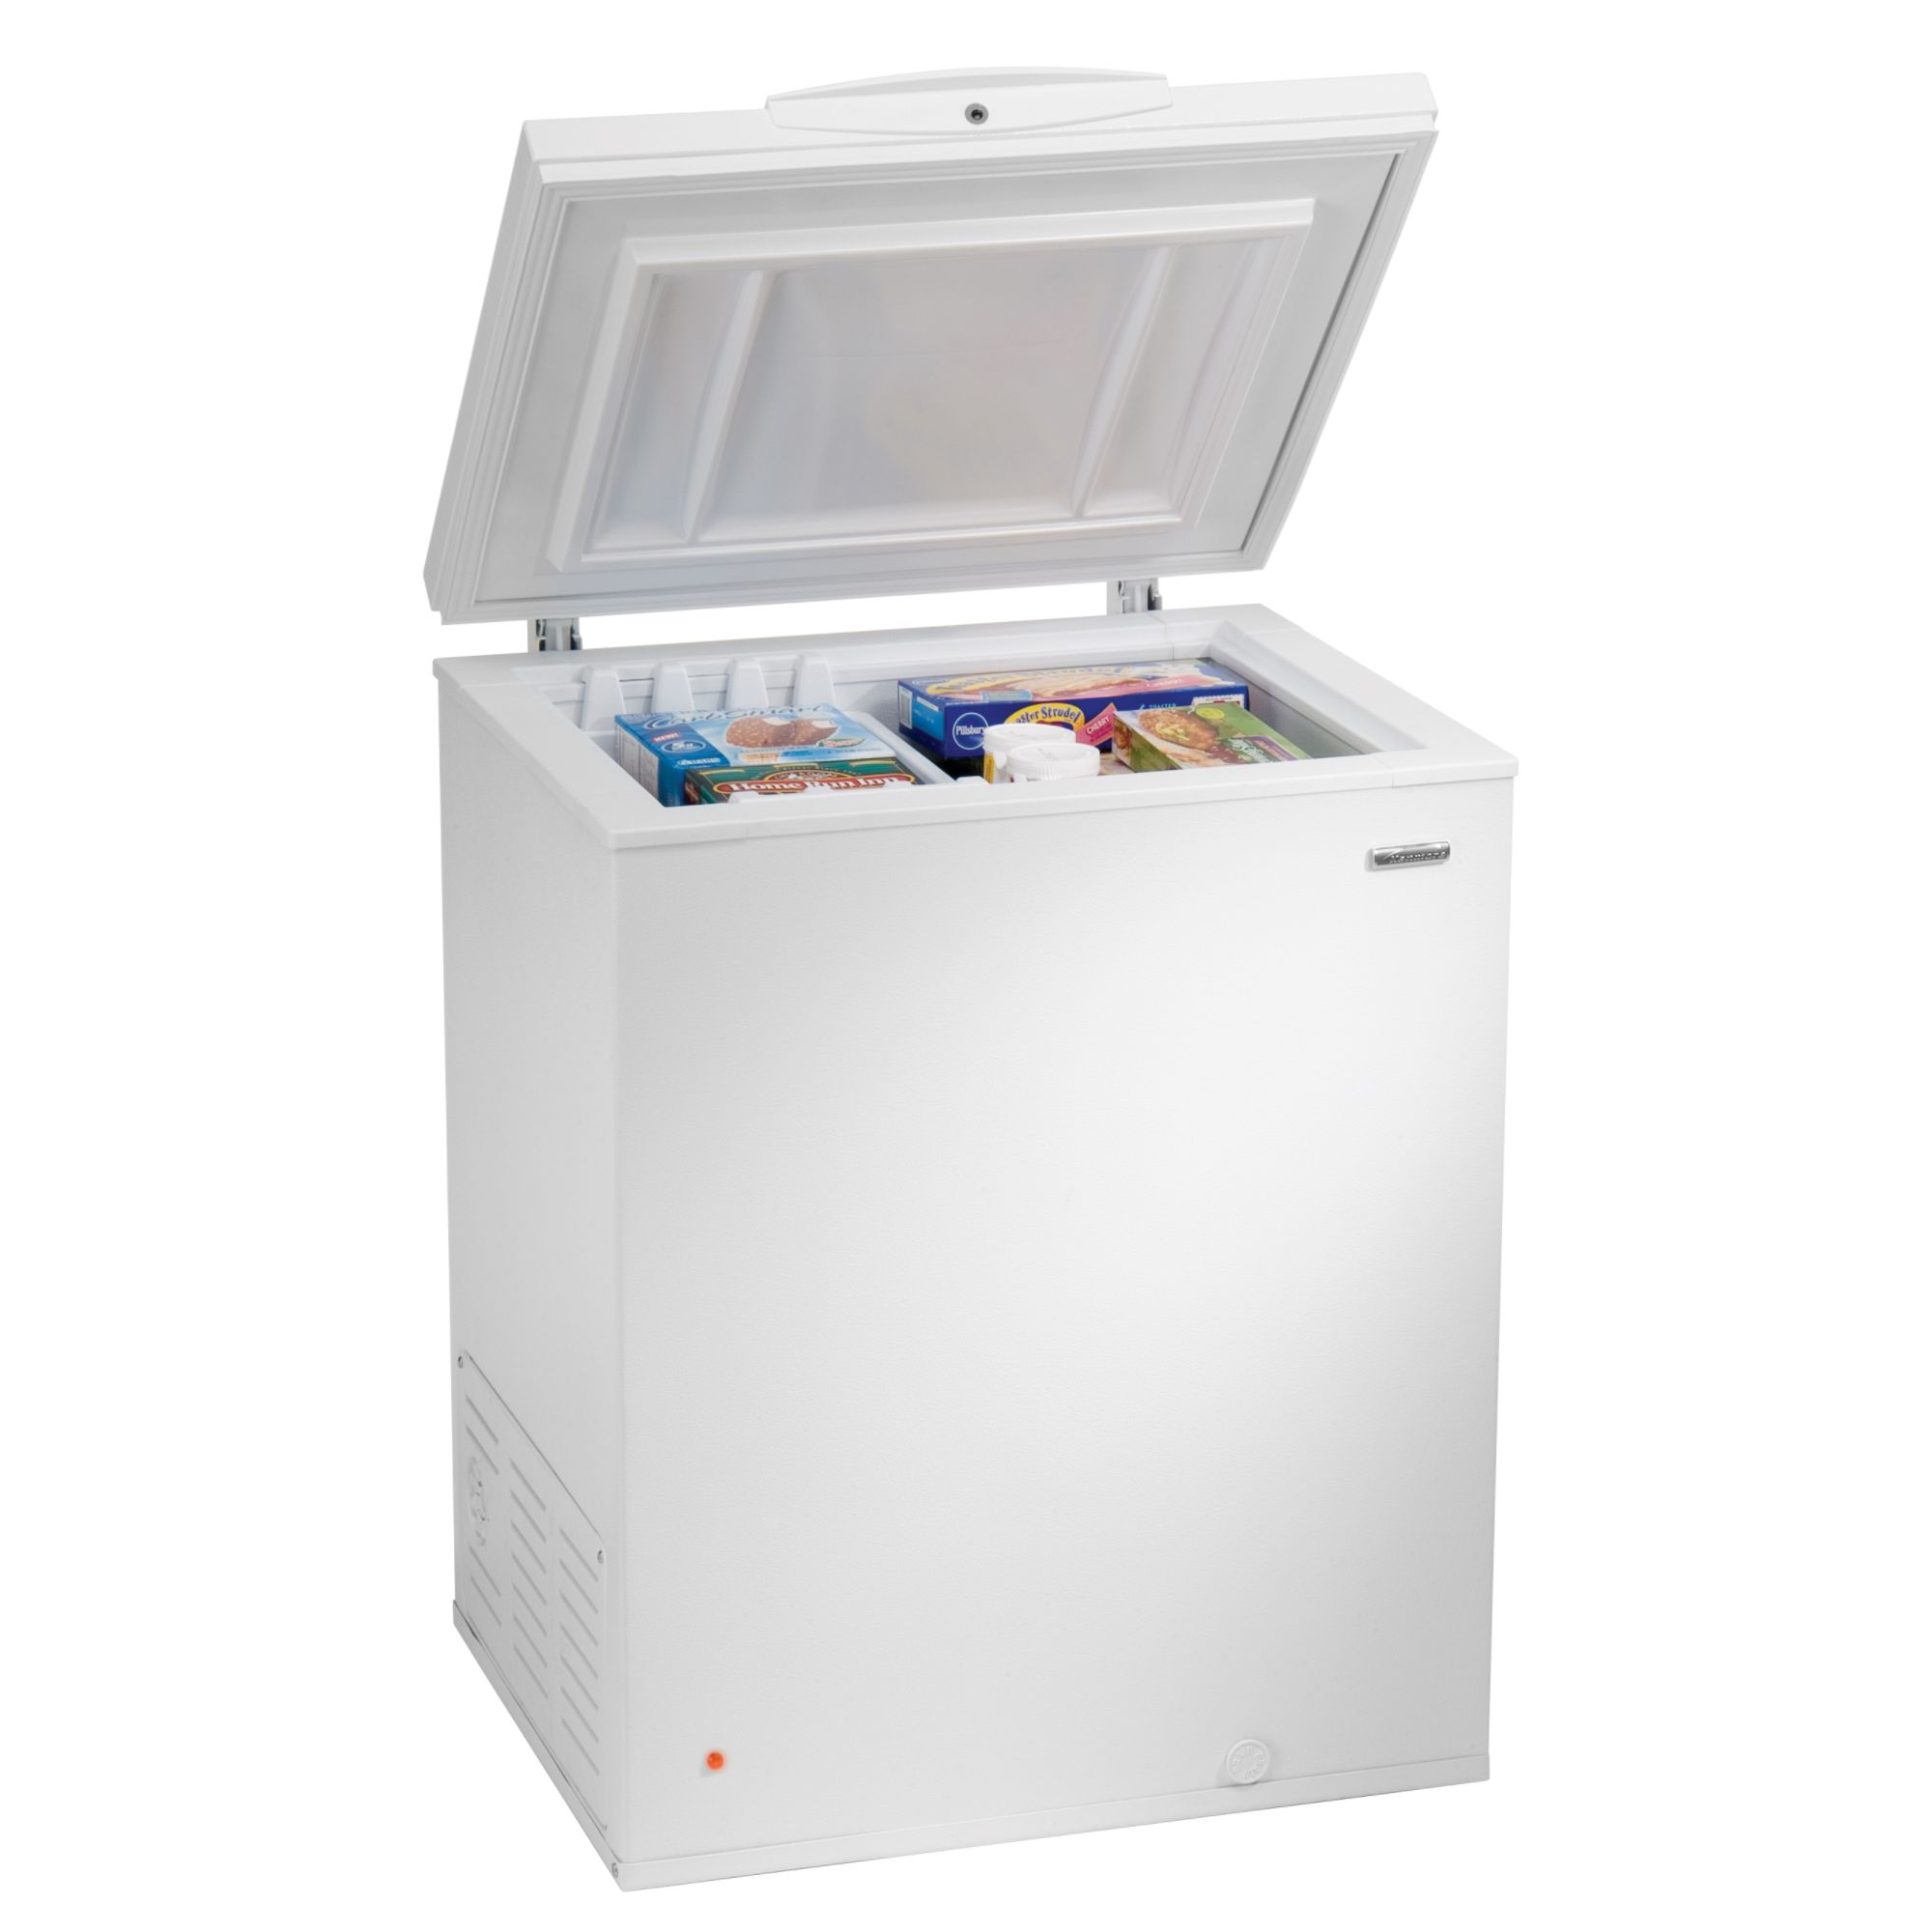 Kmart Freezer Kenmore Chest Freezer 5 Cu Ft 16512 Sears